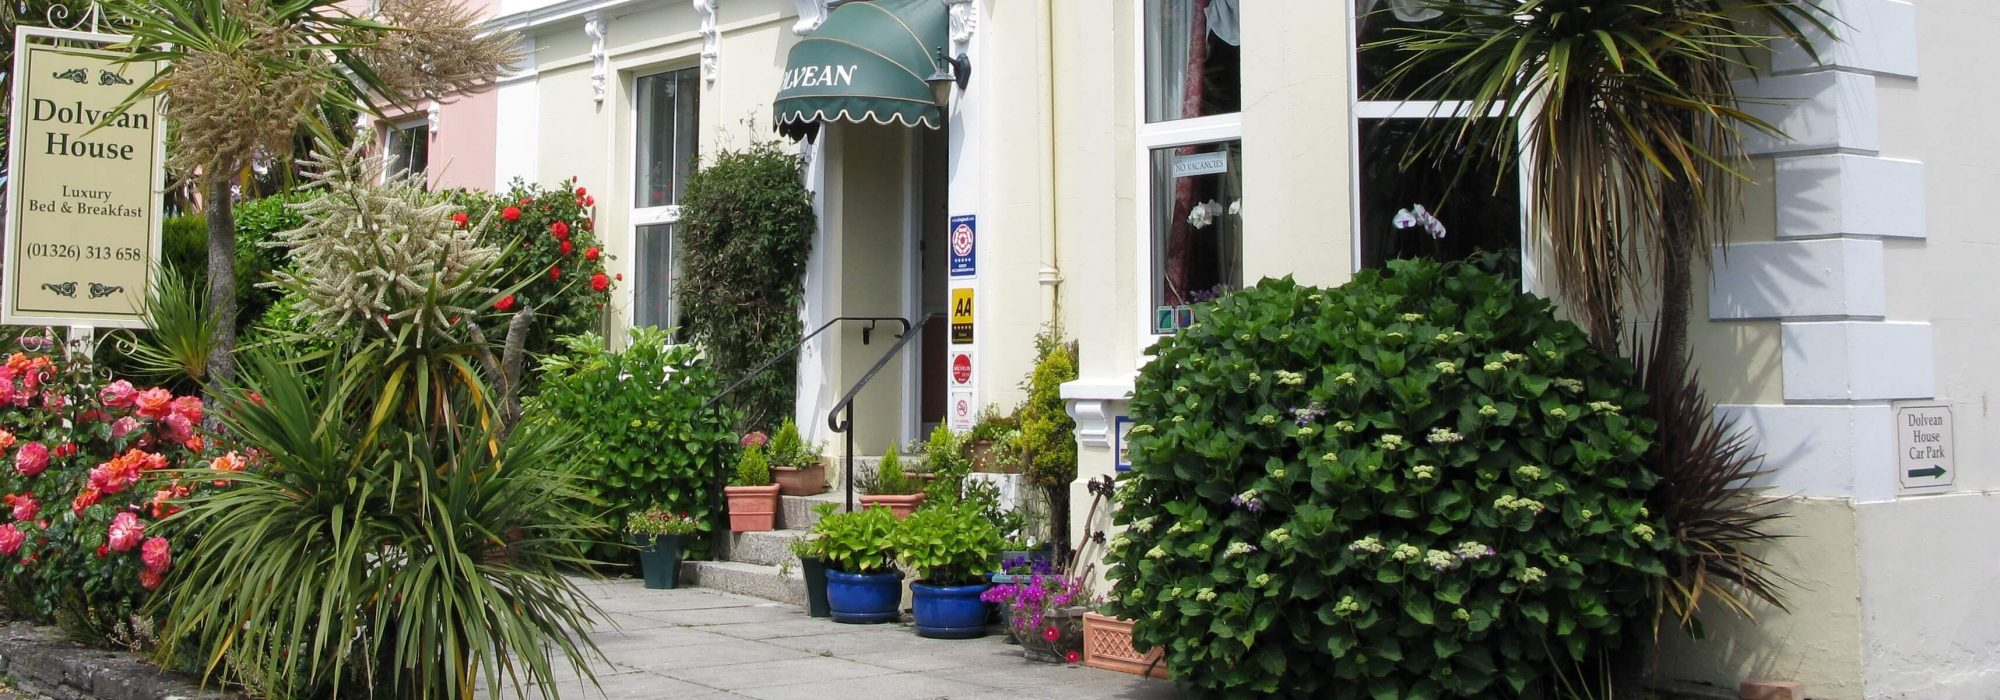 Bed & Breakfast Falmouth